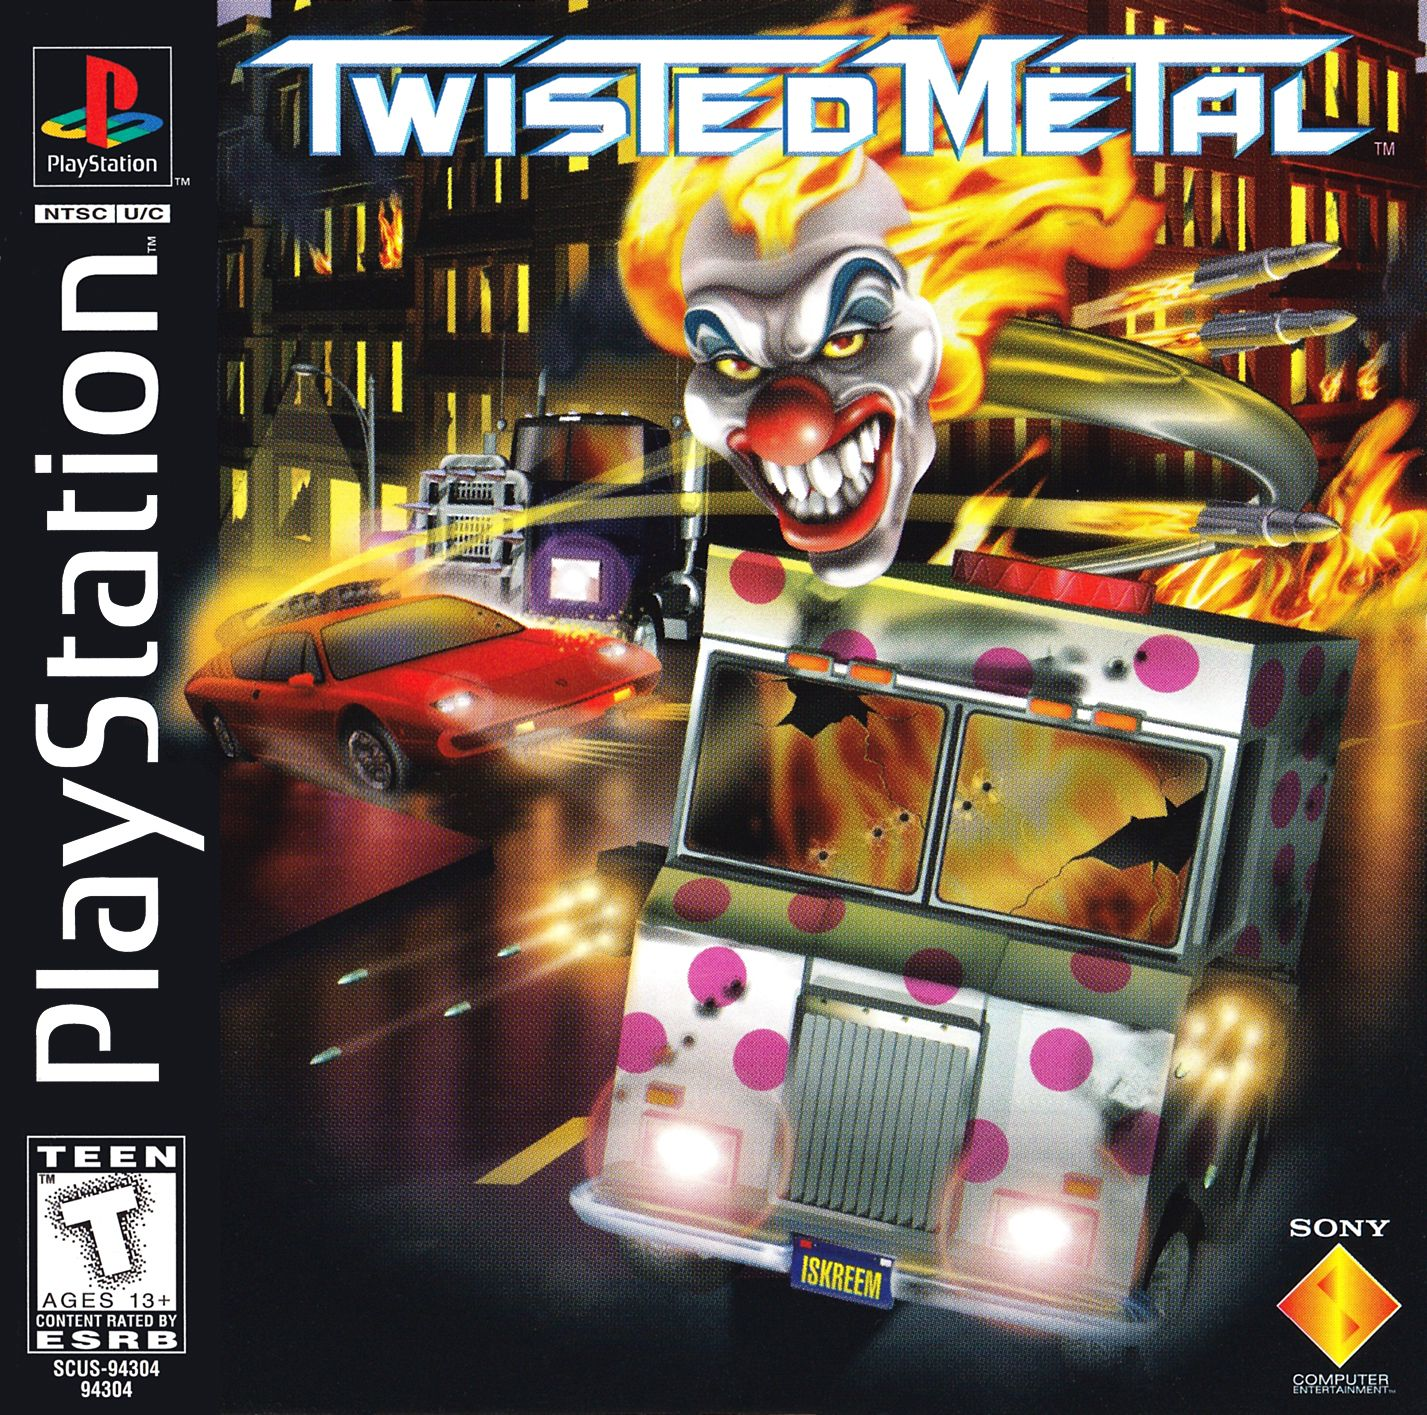 Twisted Metal Classic Video Games Twisted Metal Playstation Games